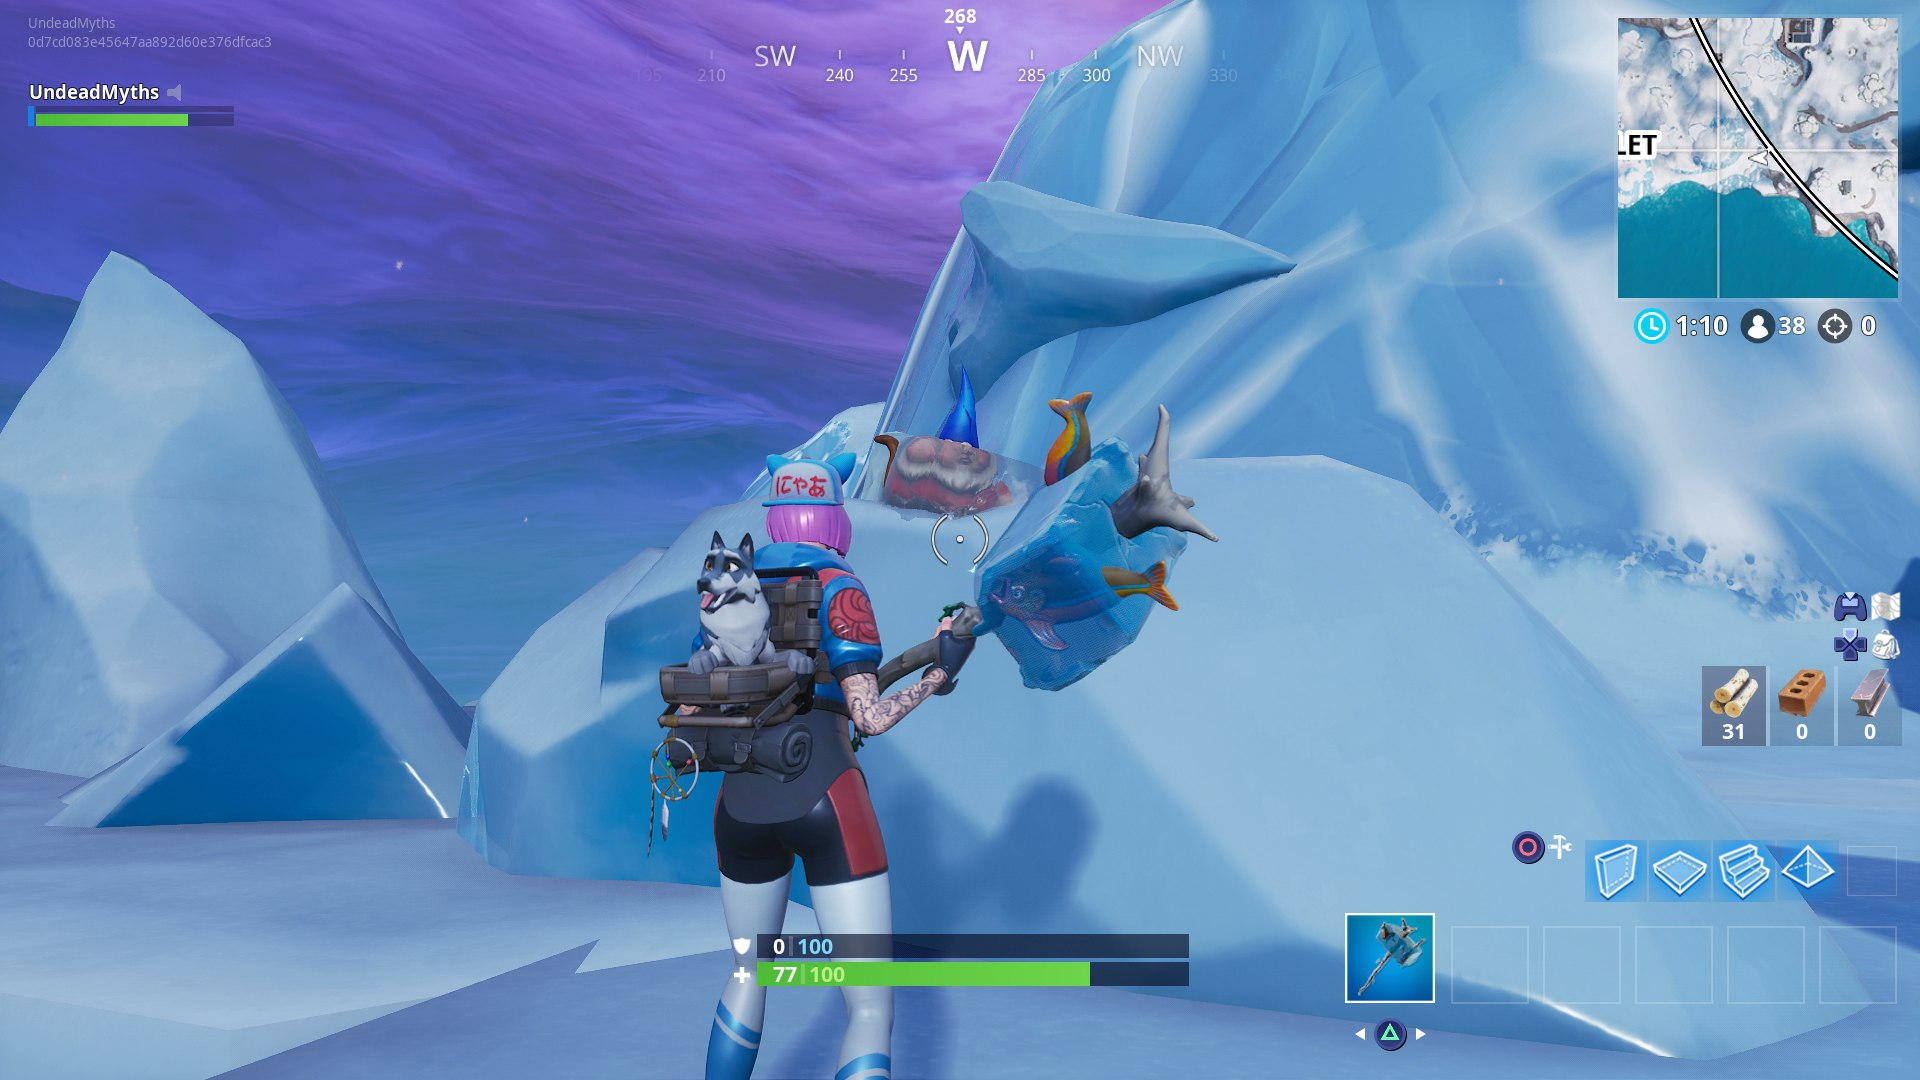 fortnite chilly gnome location 2 hirun cryer - gnome challenge fortnite